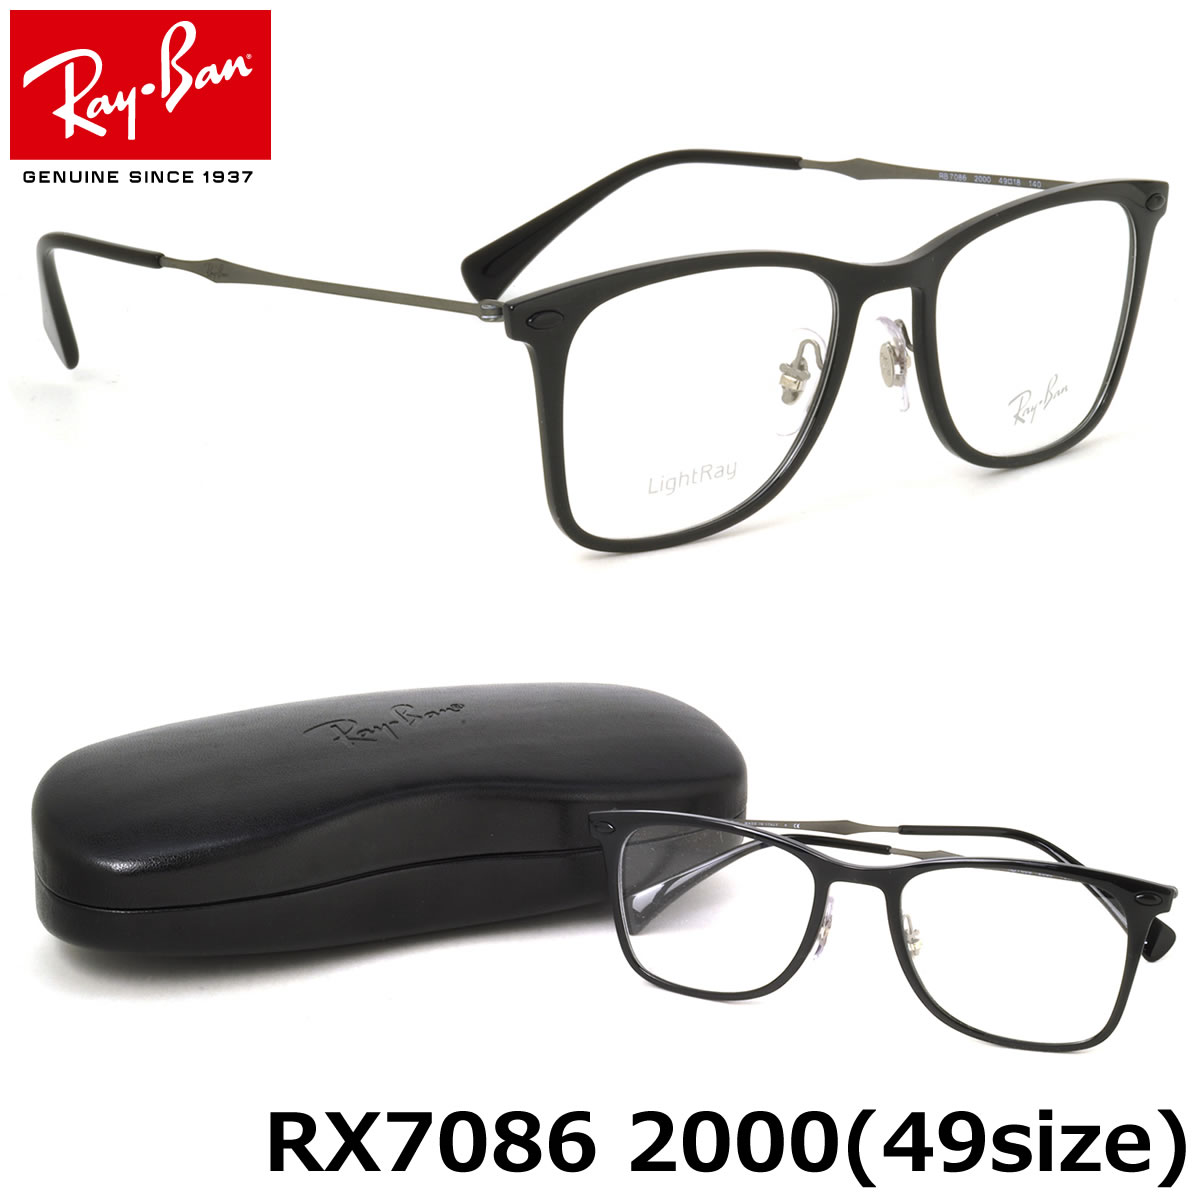 (Ray-Ban) glasses RX7086 2000 49 size Light Ray light Ray square RayBan  men s women s 40631e13827